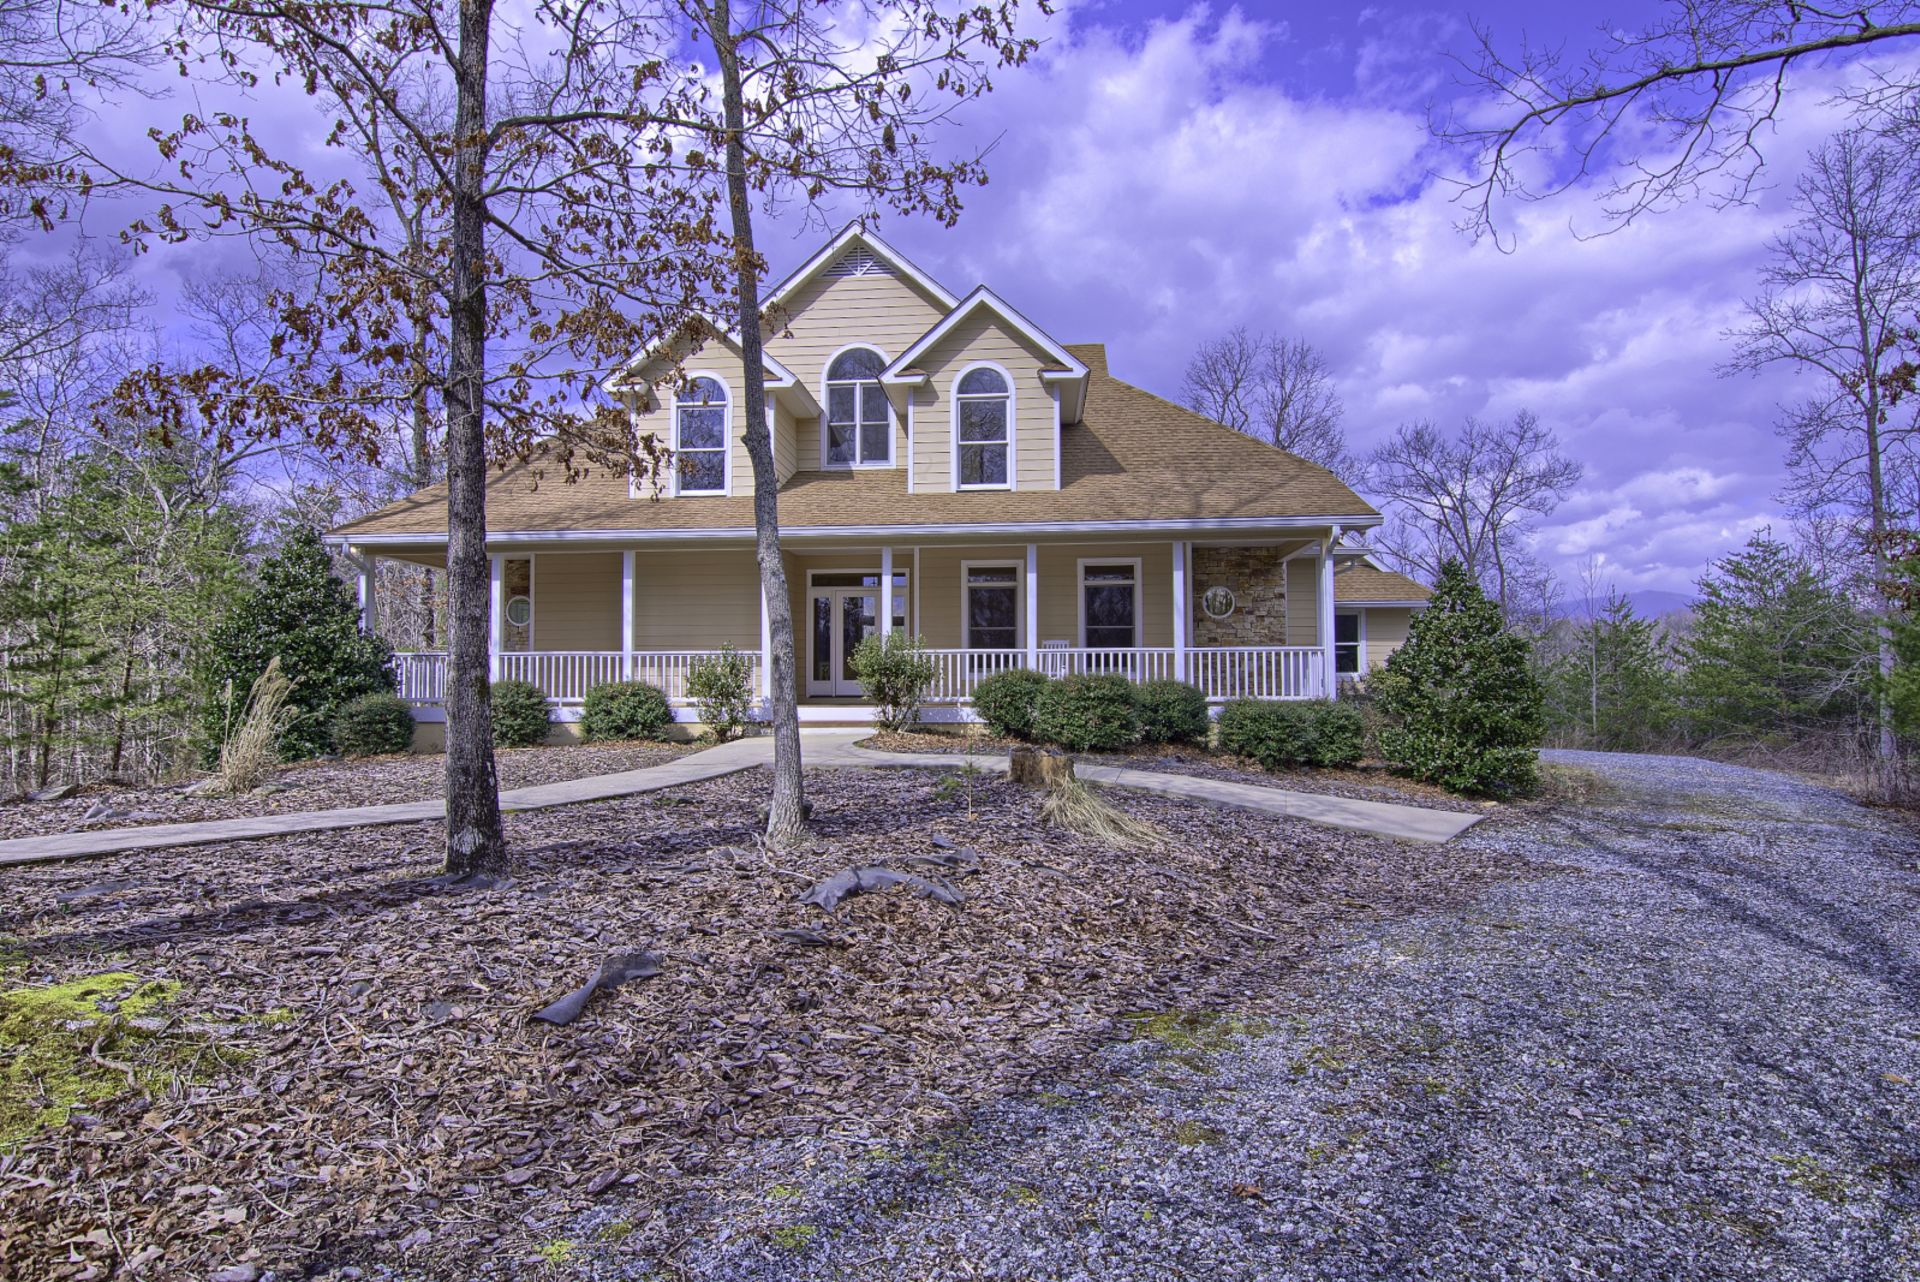 New listing in Lake Adger, Mill Spring, NC